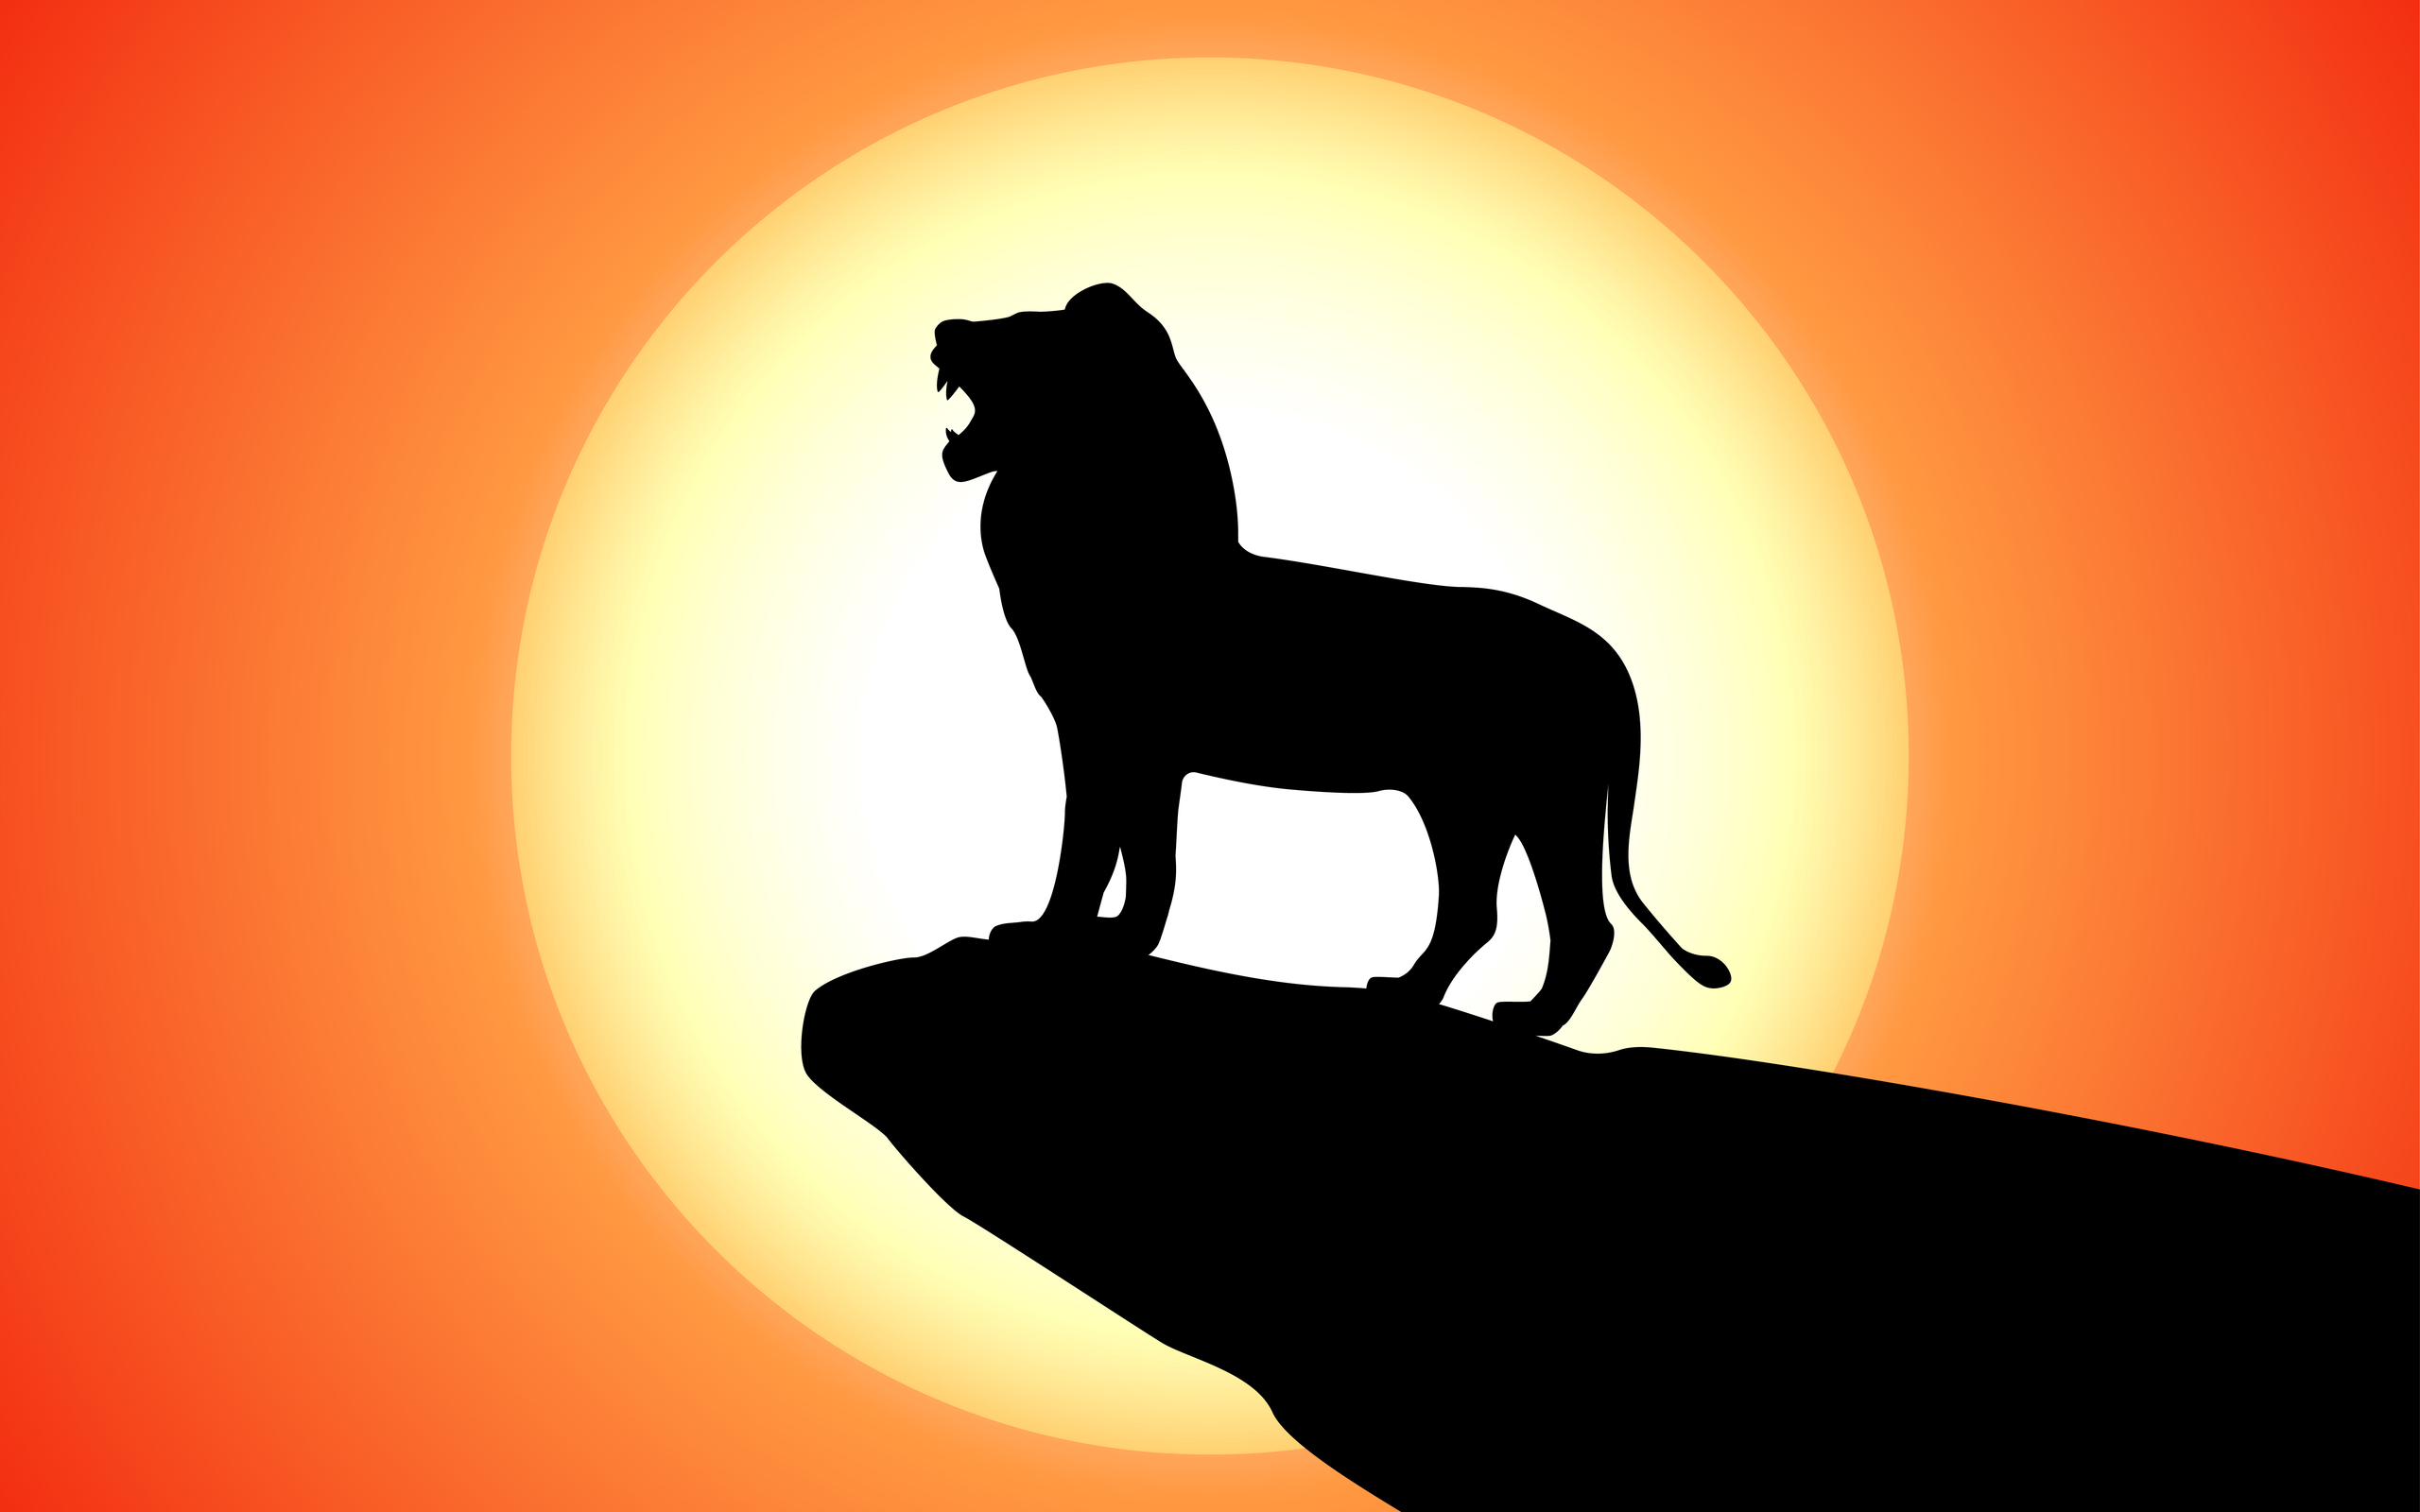 2560x1600 The Lion King 2560x1600 Resolution Hd 4k Wallpapers